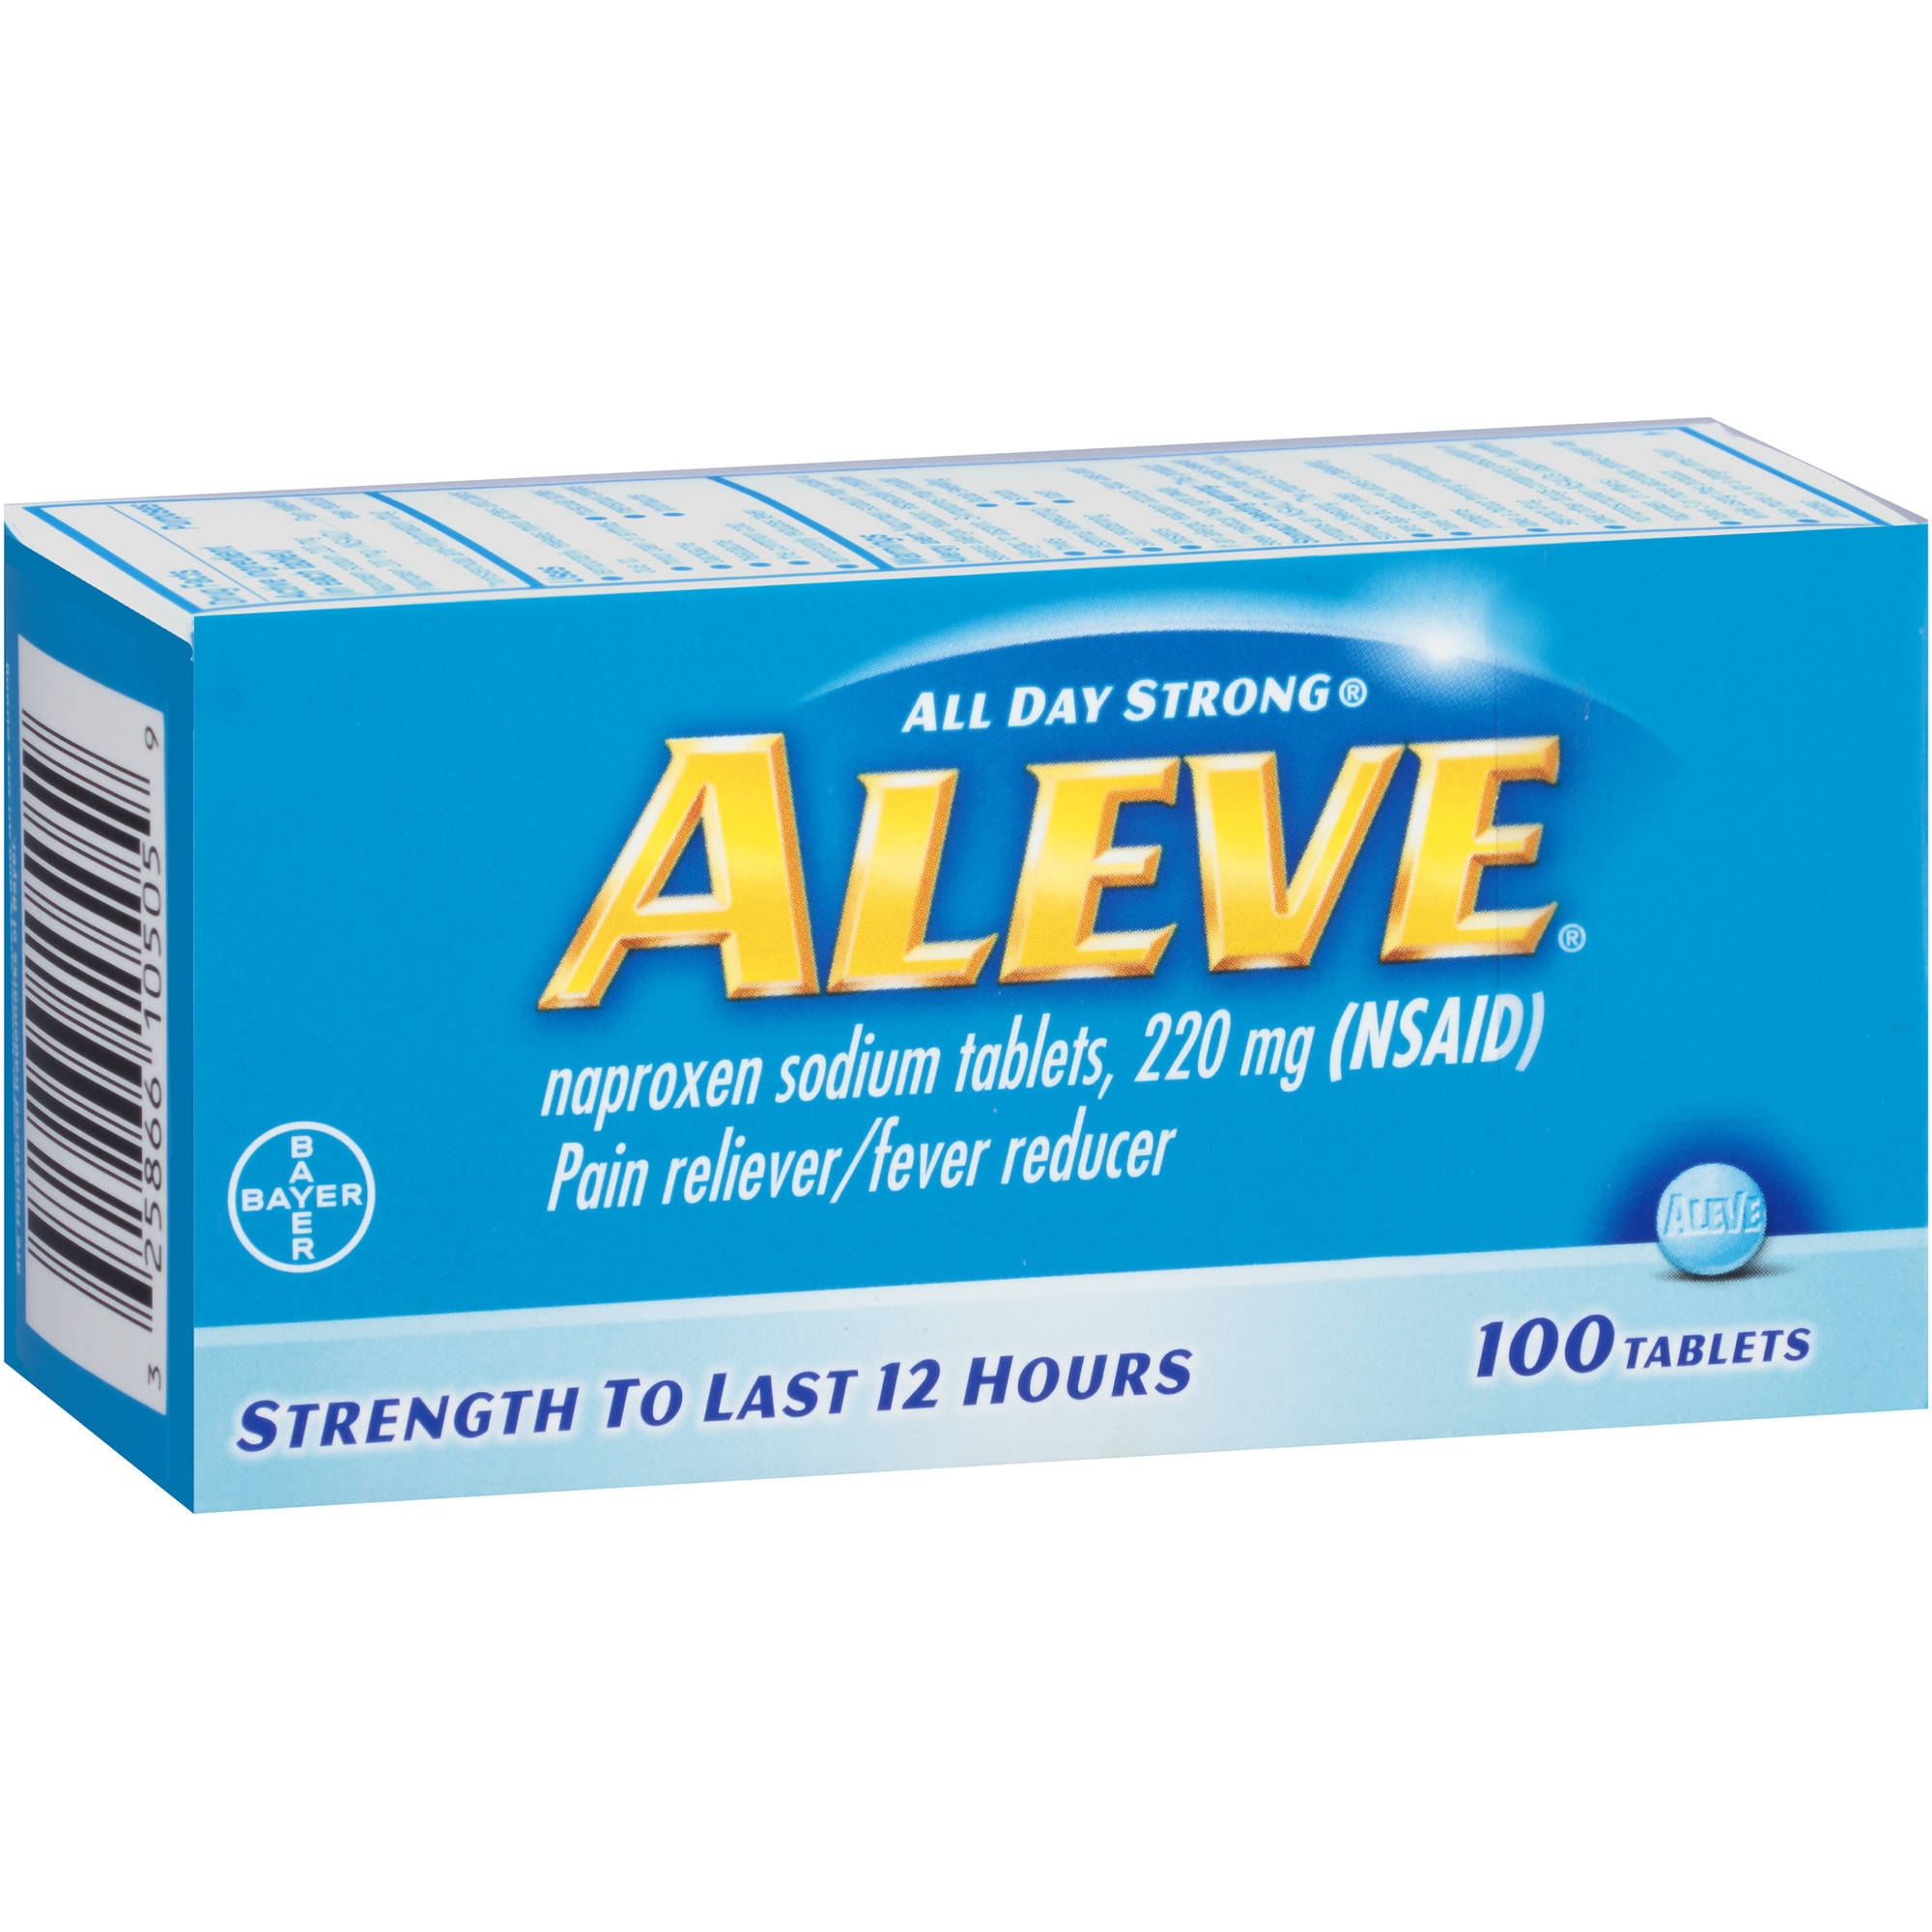 Aleve Pain Reliever/Fever Reducer Naproxen Sodium Tablets, 220mg, 100 count